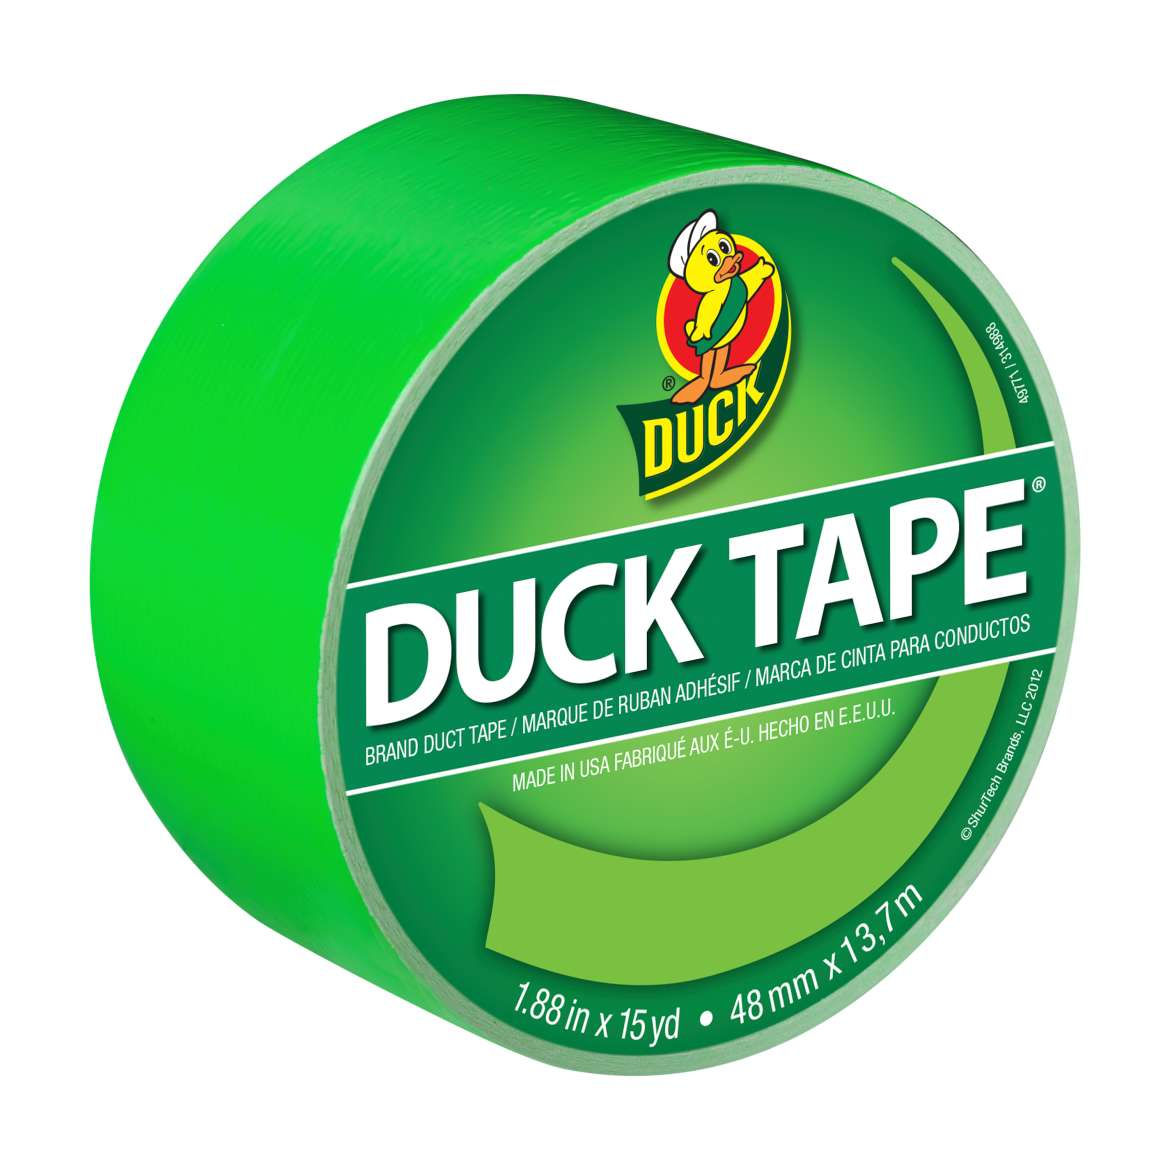 Color Duck Tape® Brand Duct Tape - Neon Green, 1.88 in. x 15 yd. Image